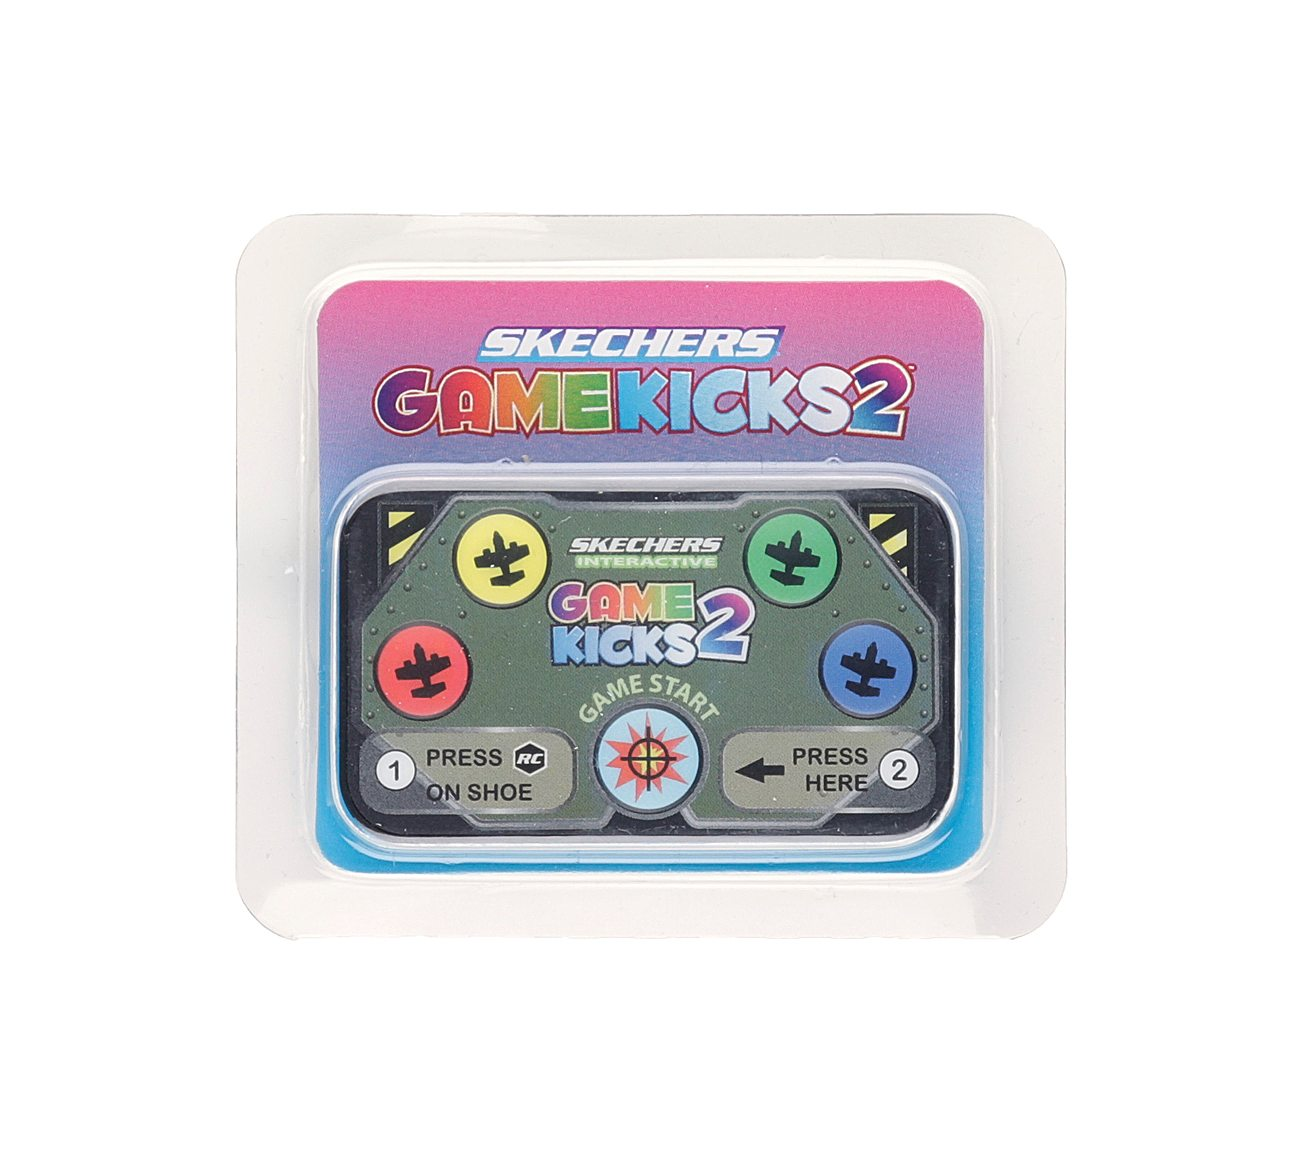 Game Kicks - Replacement Remote Control